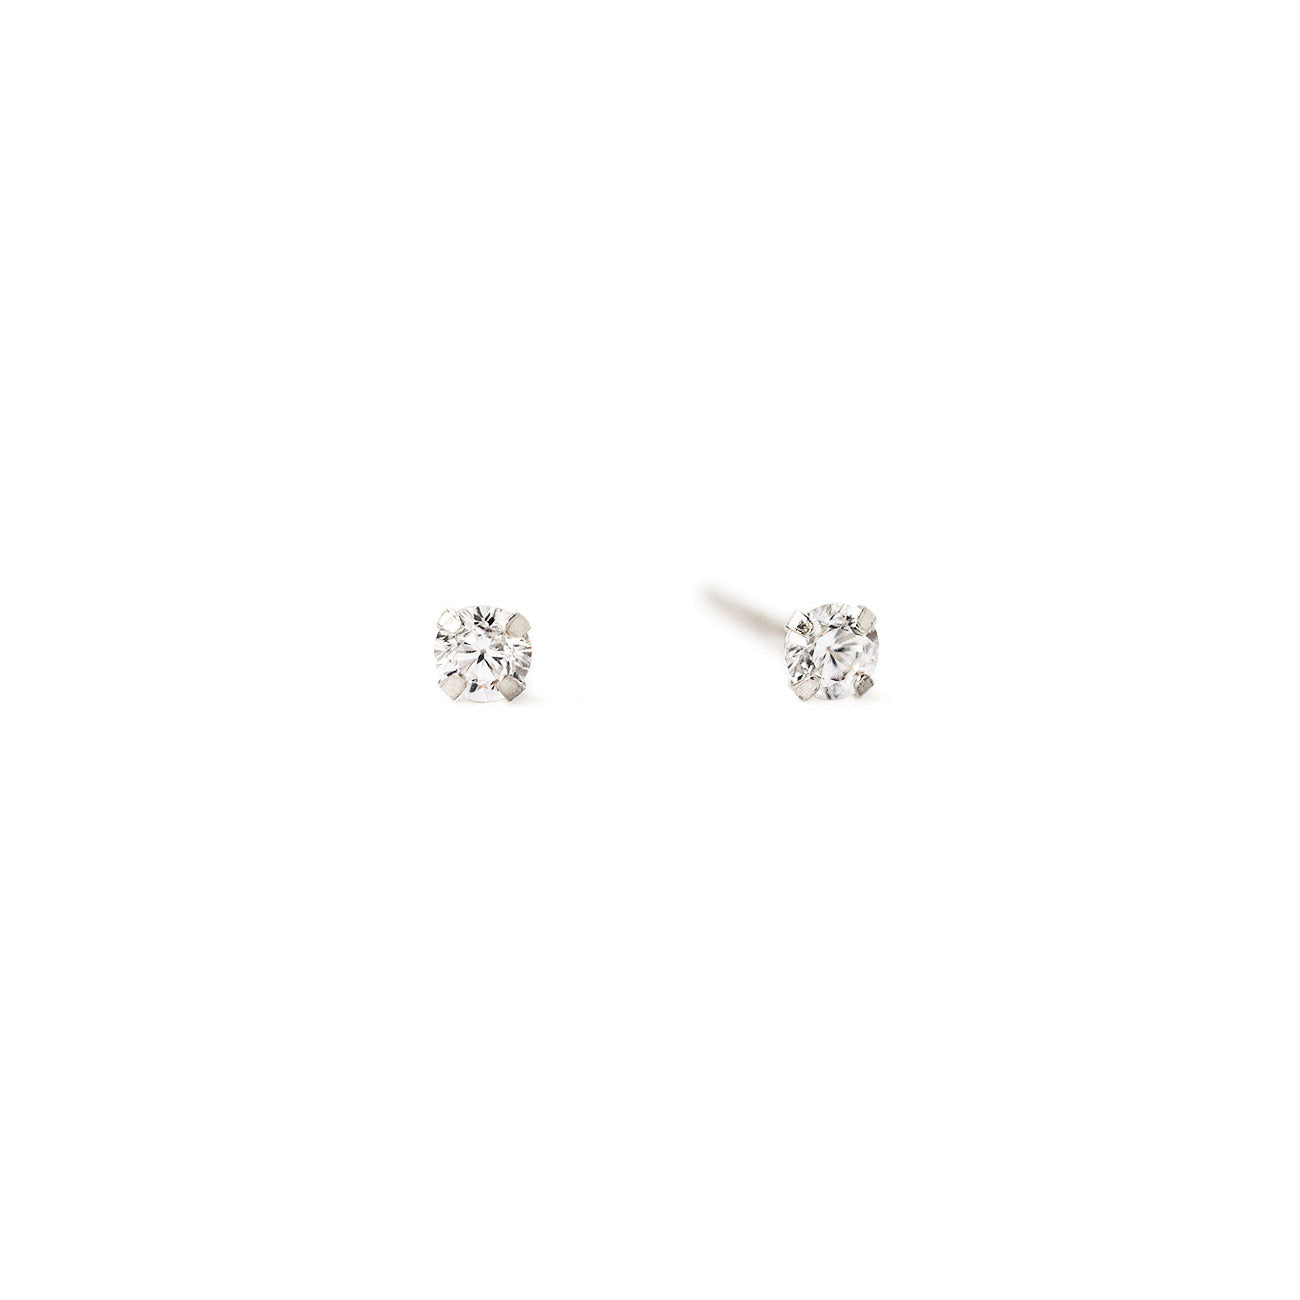 Tiny 14K White Gold Crystal Stud Earrings